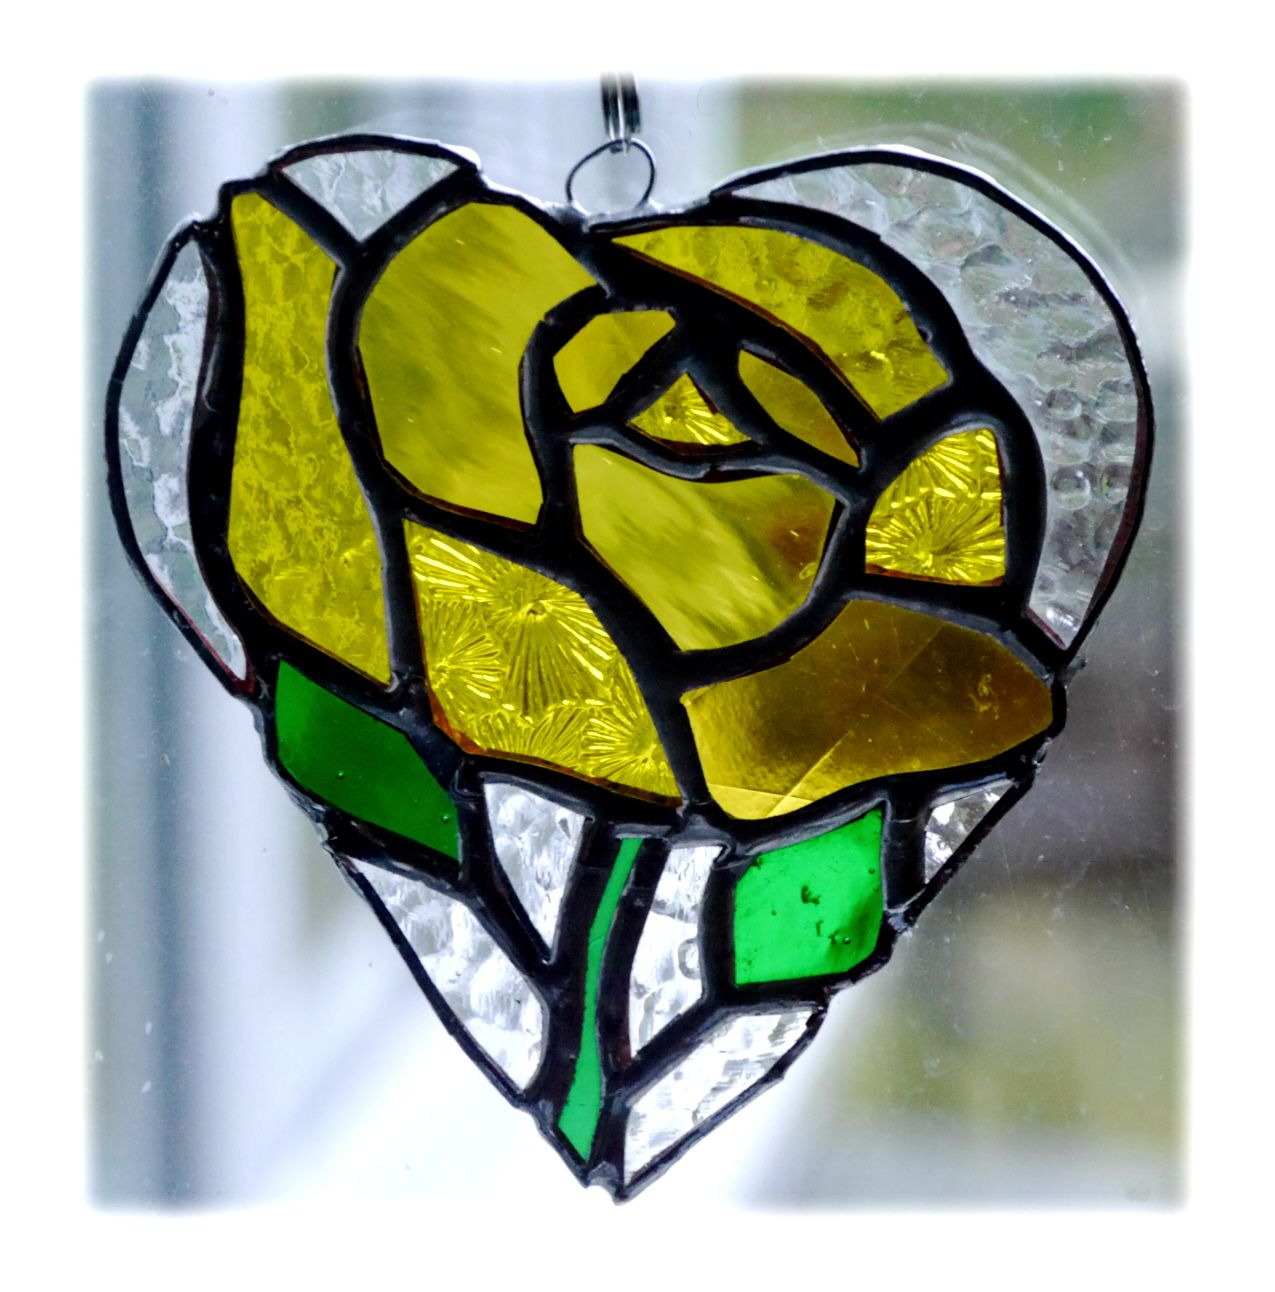 YELLOW Rose full Heart 018 Yellow #1903 FREE 16.00